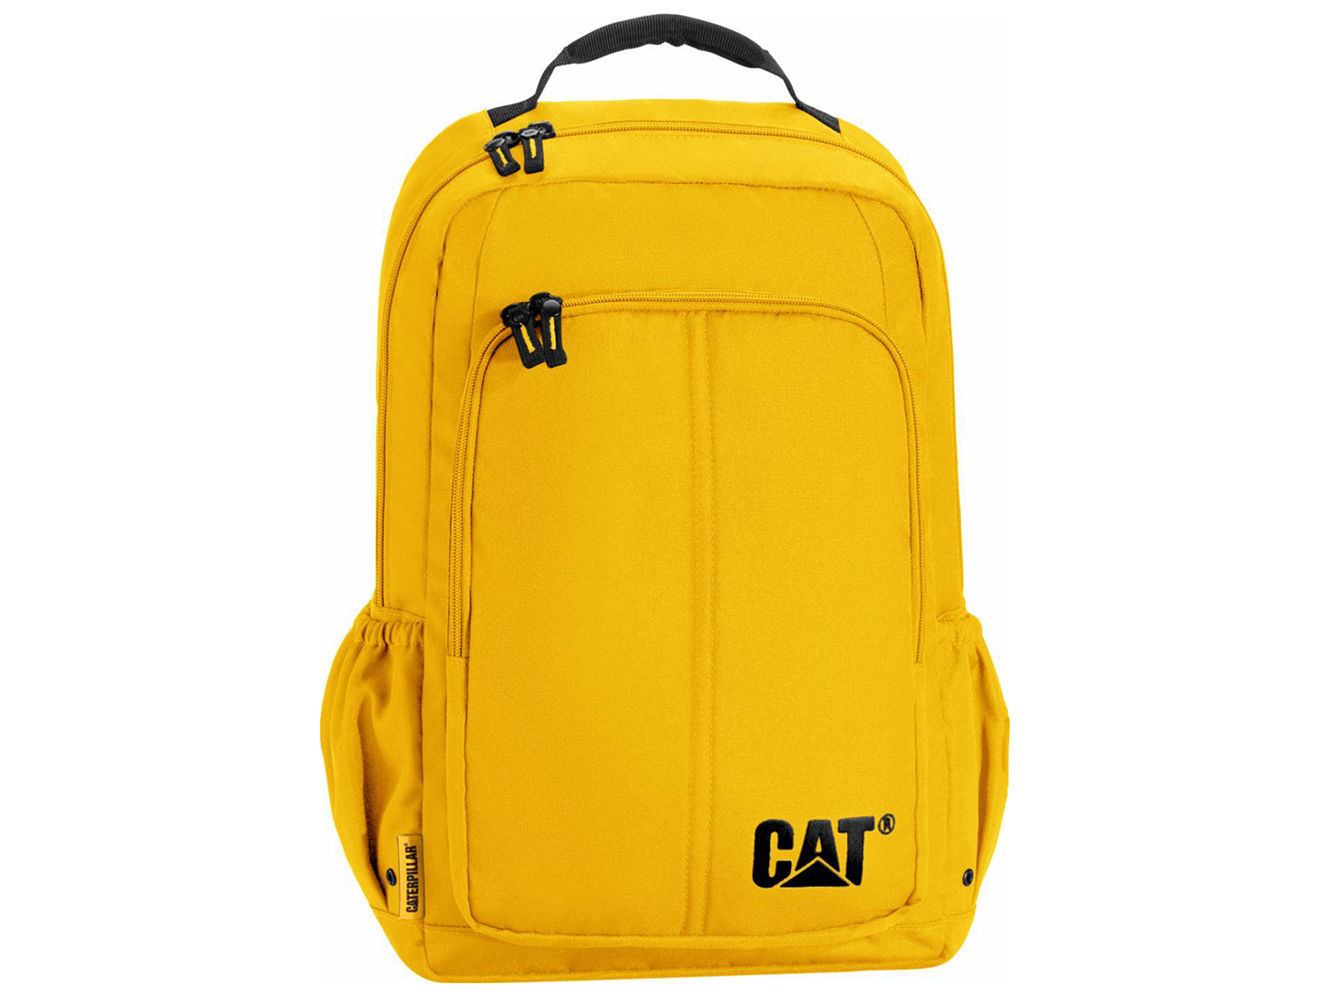 422b51c9e34b2 Caterpillar INNOVADO plecak CAT   laptop 15